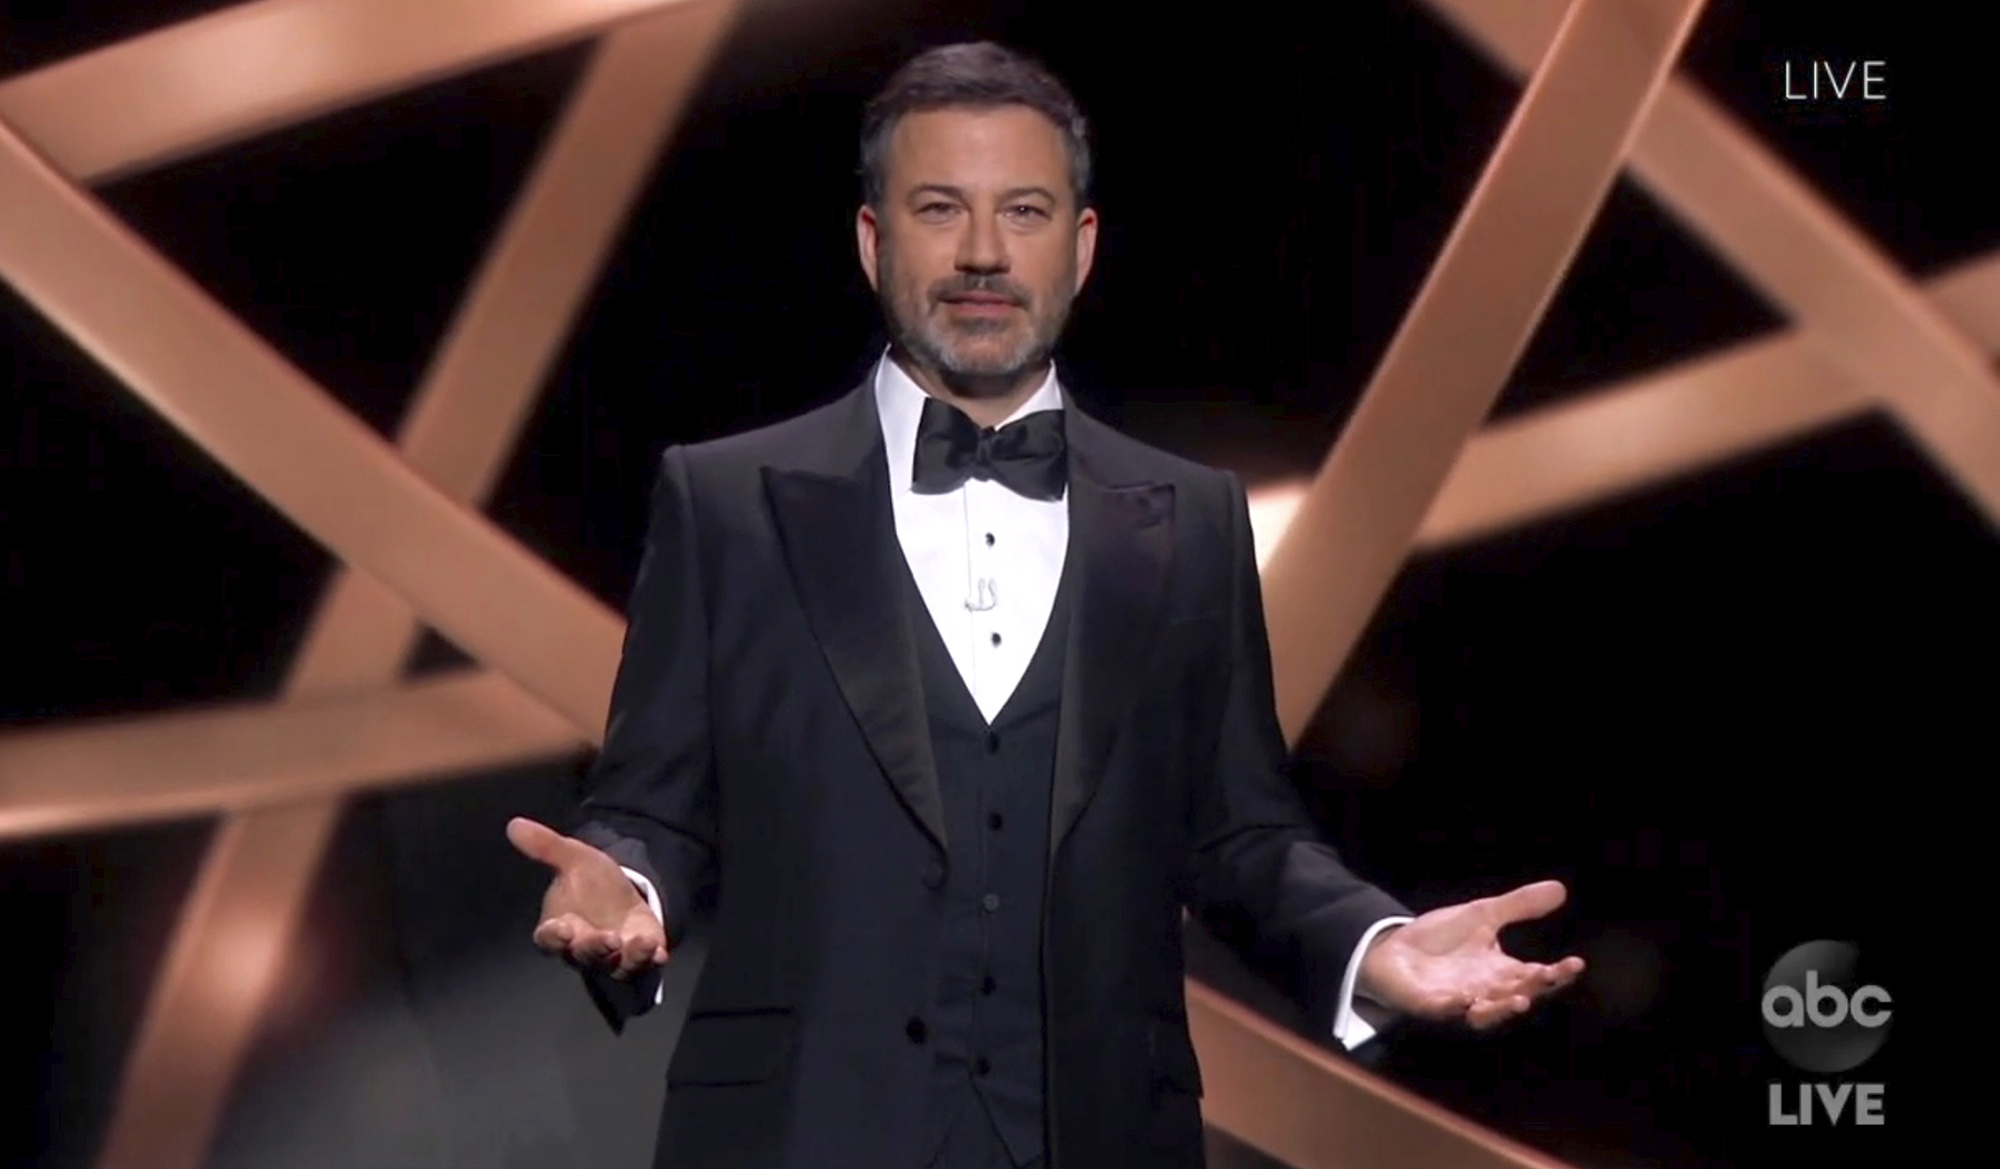 In this video grab captured on Sept. 20, 2020, courtesy of the Academy of Television Arts & Sciences and ABC Entertainment, host Jimmy Kimmel speaks during the 72nd Emmy Awards broadcast.